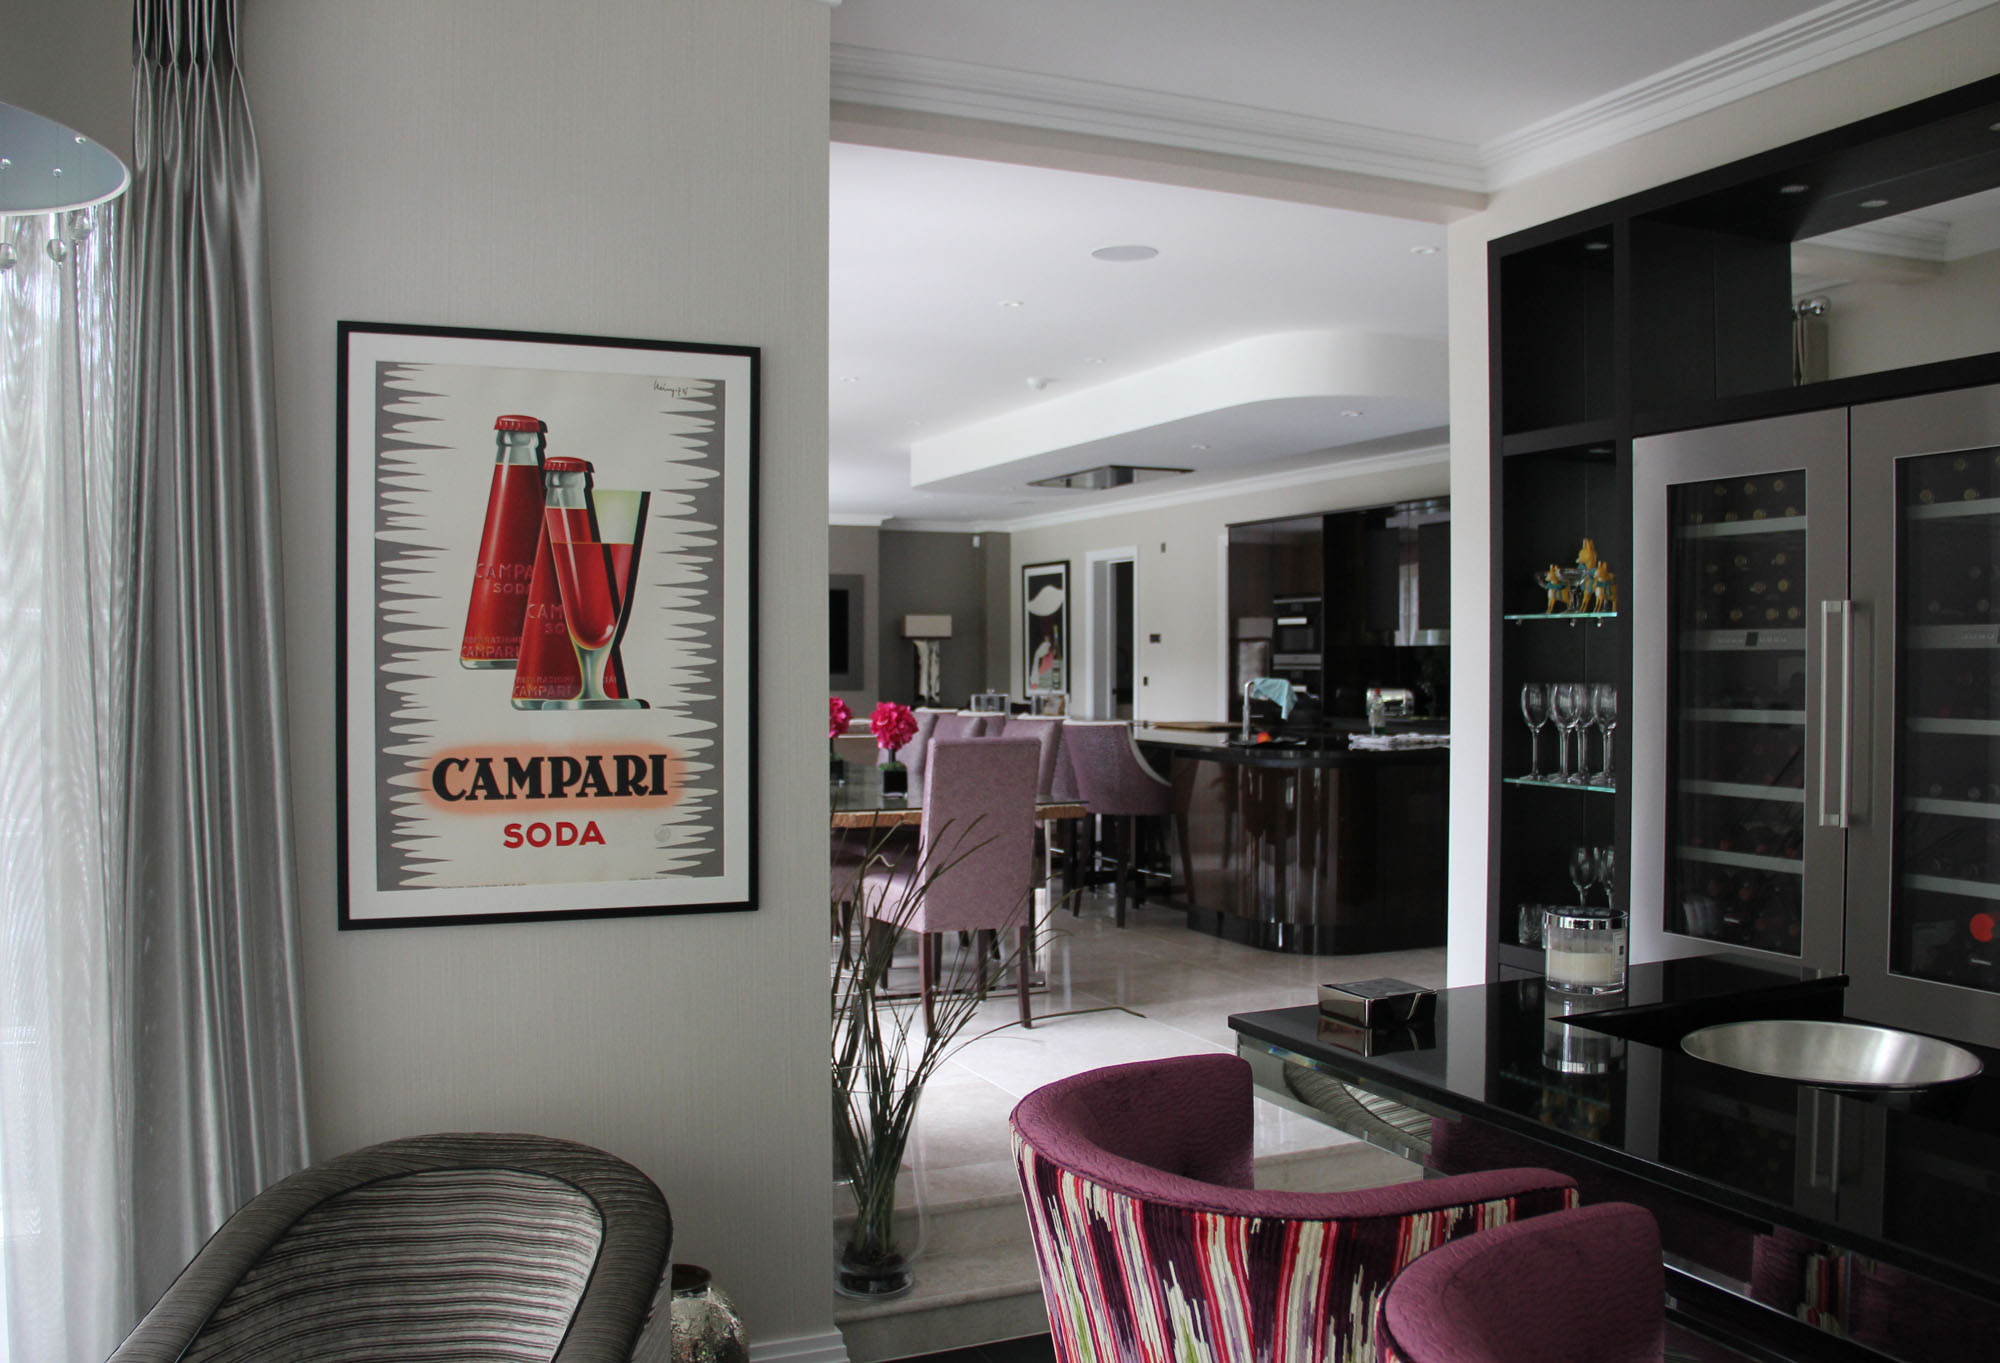 Sleek, Art Deco style living and dining area with Campari poster; red, purple, black, grey